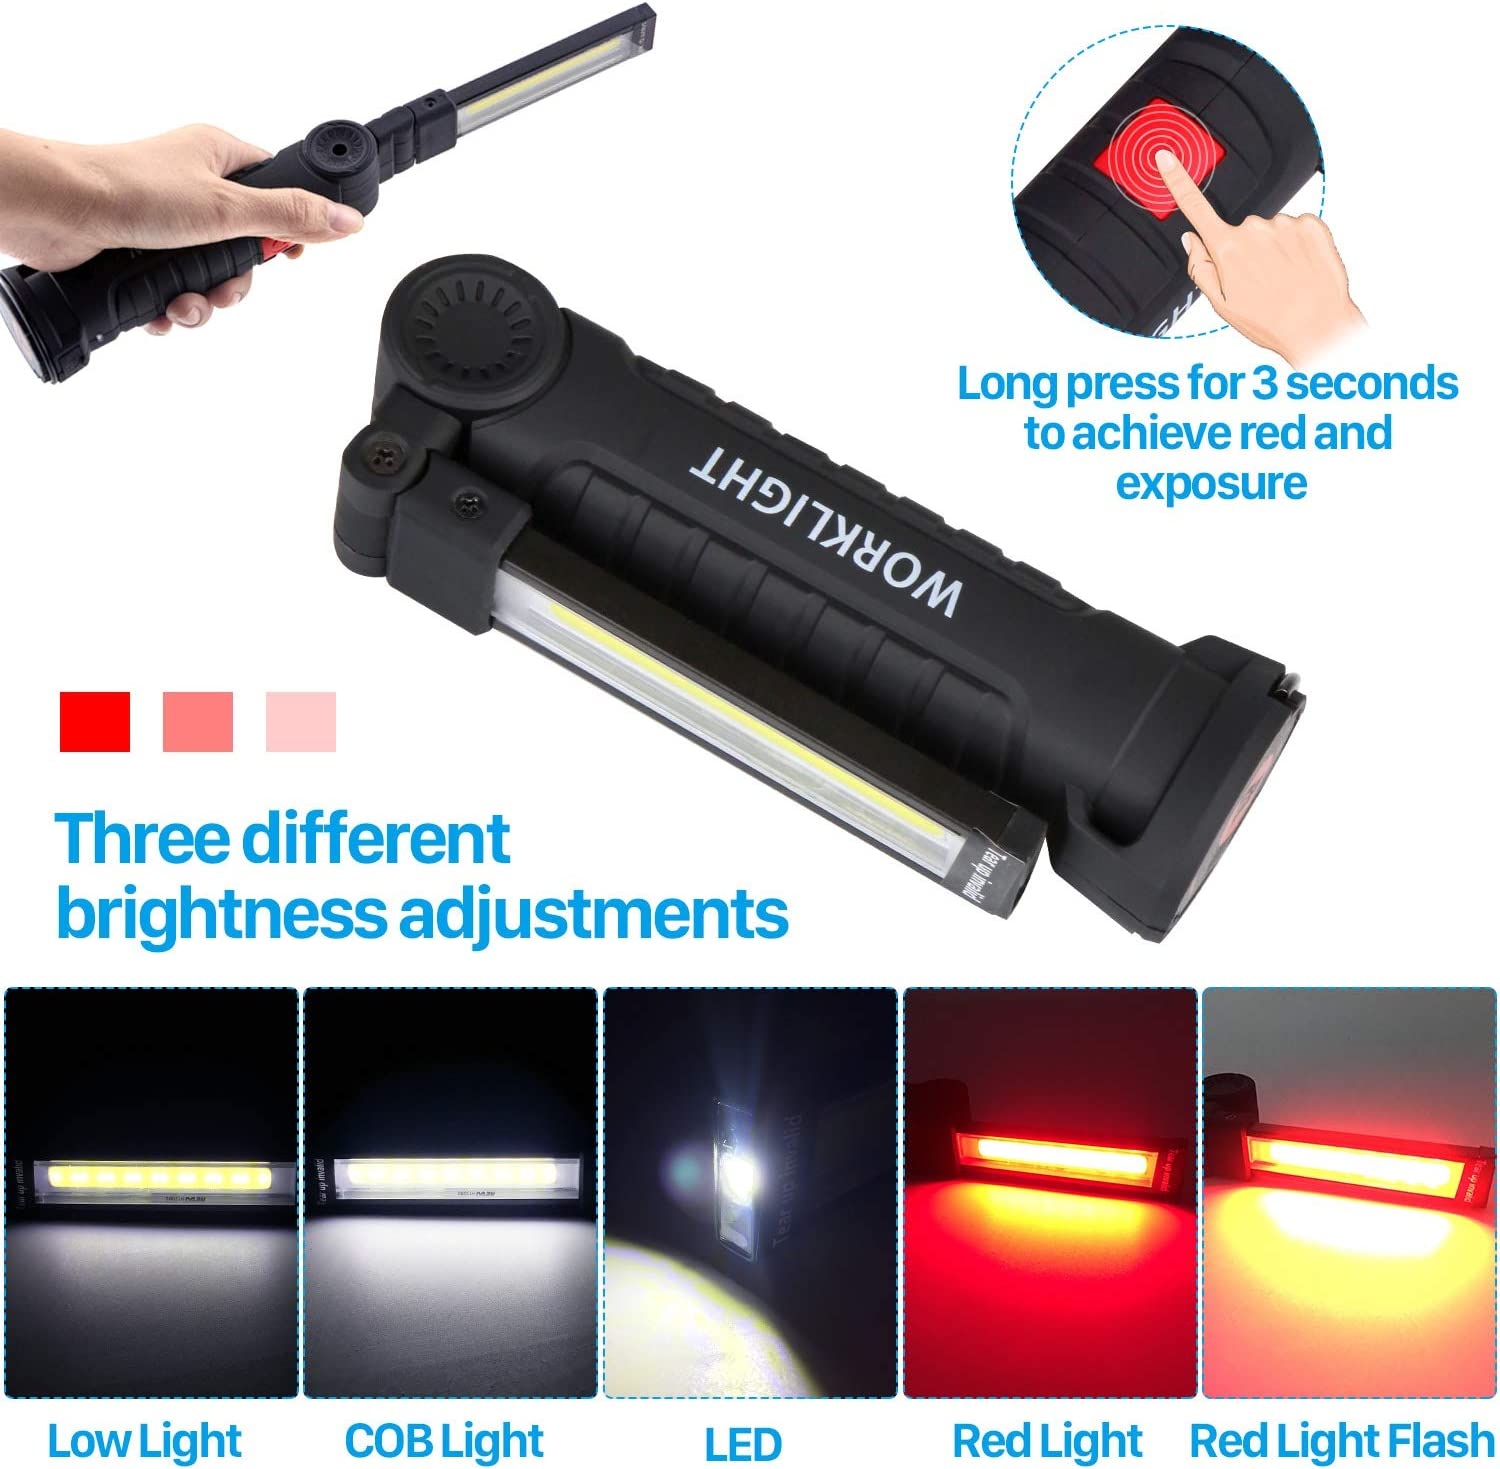 Details about  /2X Rechargeable COB LED Flashlight 360° Rotating Torch Work light Magnet